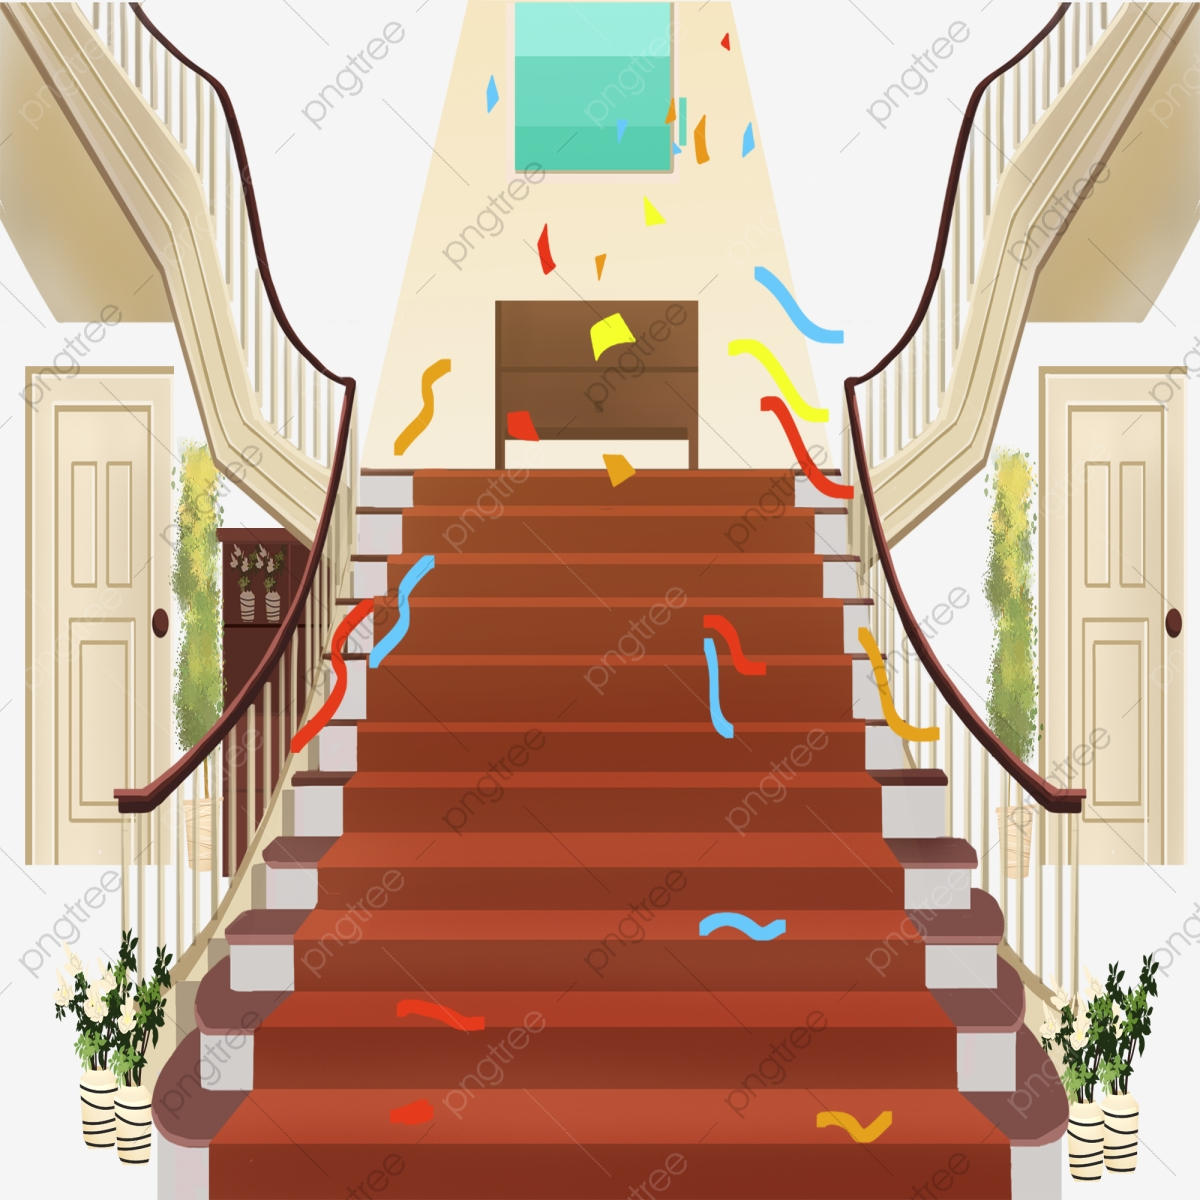 Cartoon Stair Guard Railing Handrail Stairs Cartoon Pattern Png Transparent Clipart Image And Psd File For Free Download